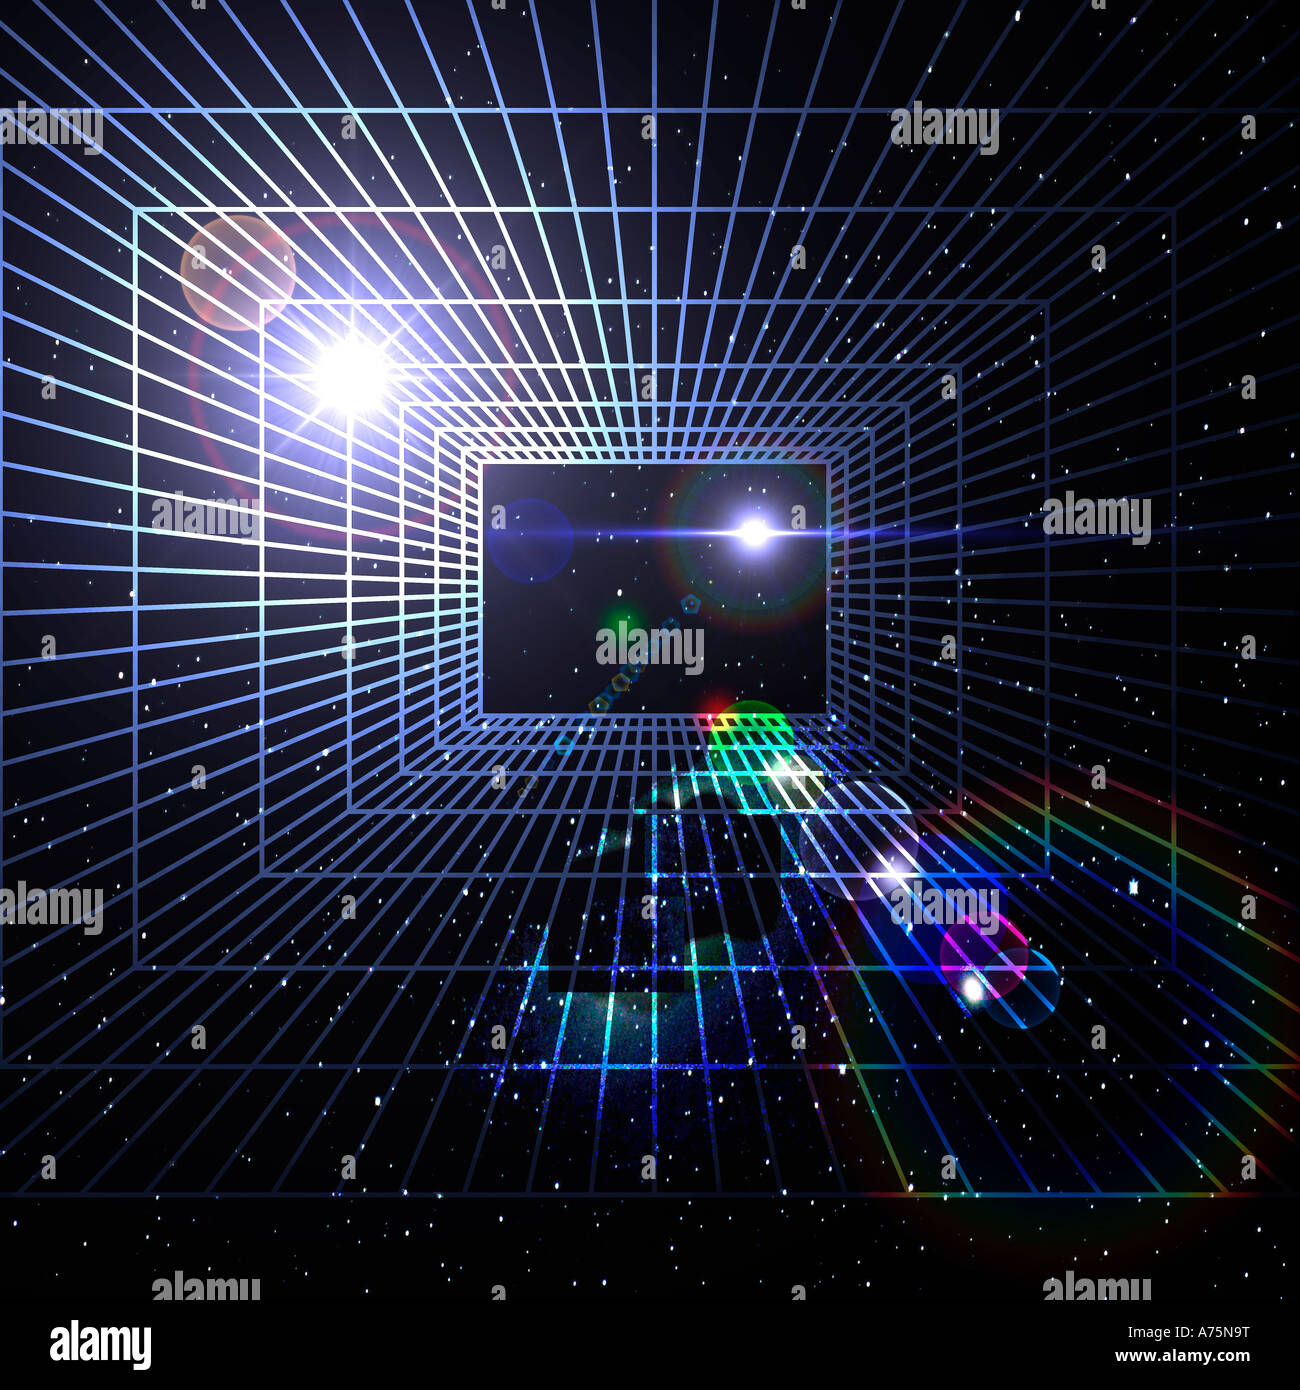 rectangular grid positioned over large portion of starry night sky - Stock Image